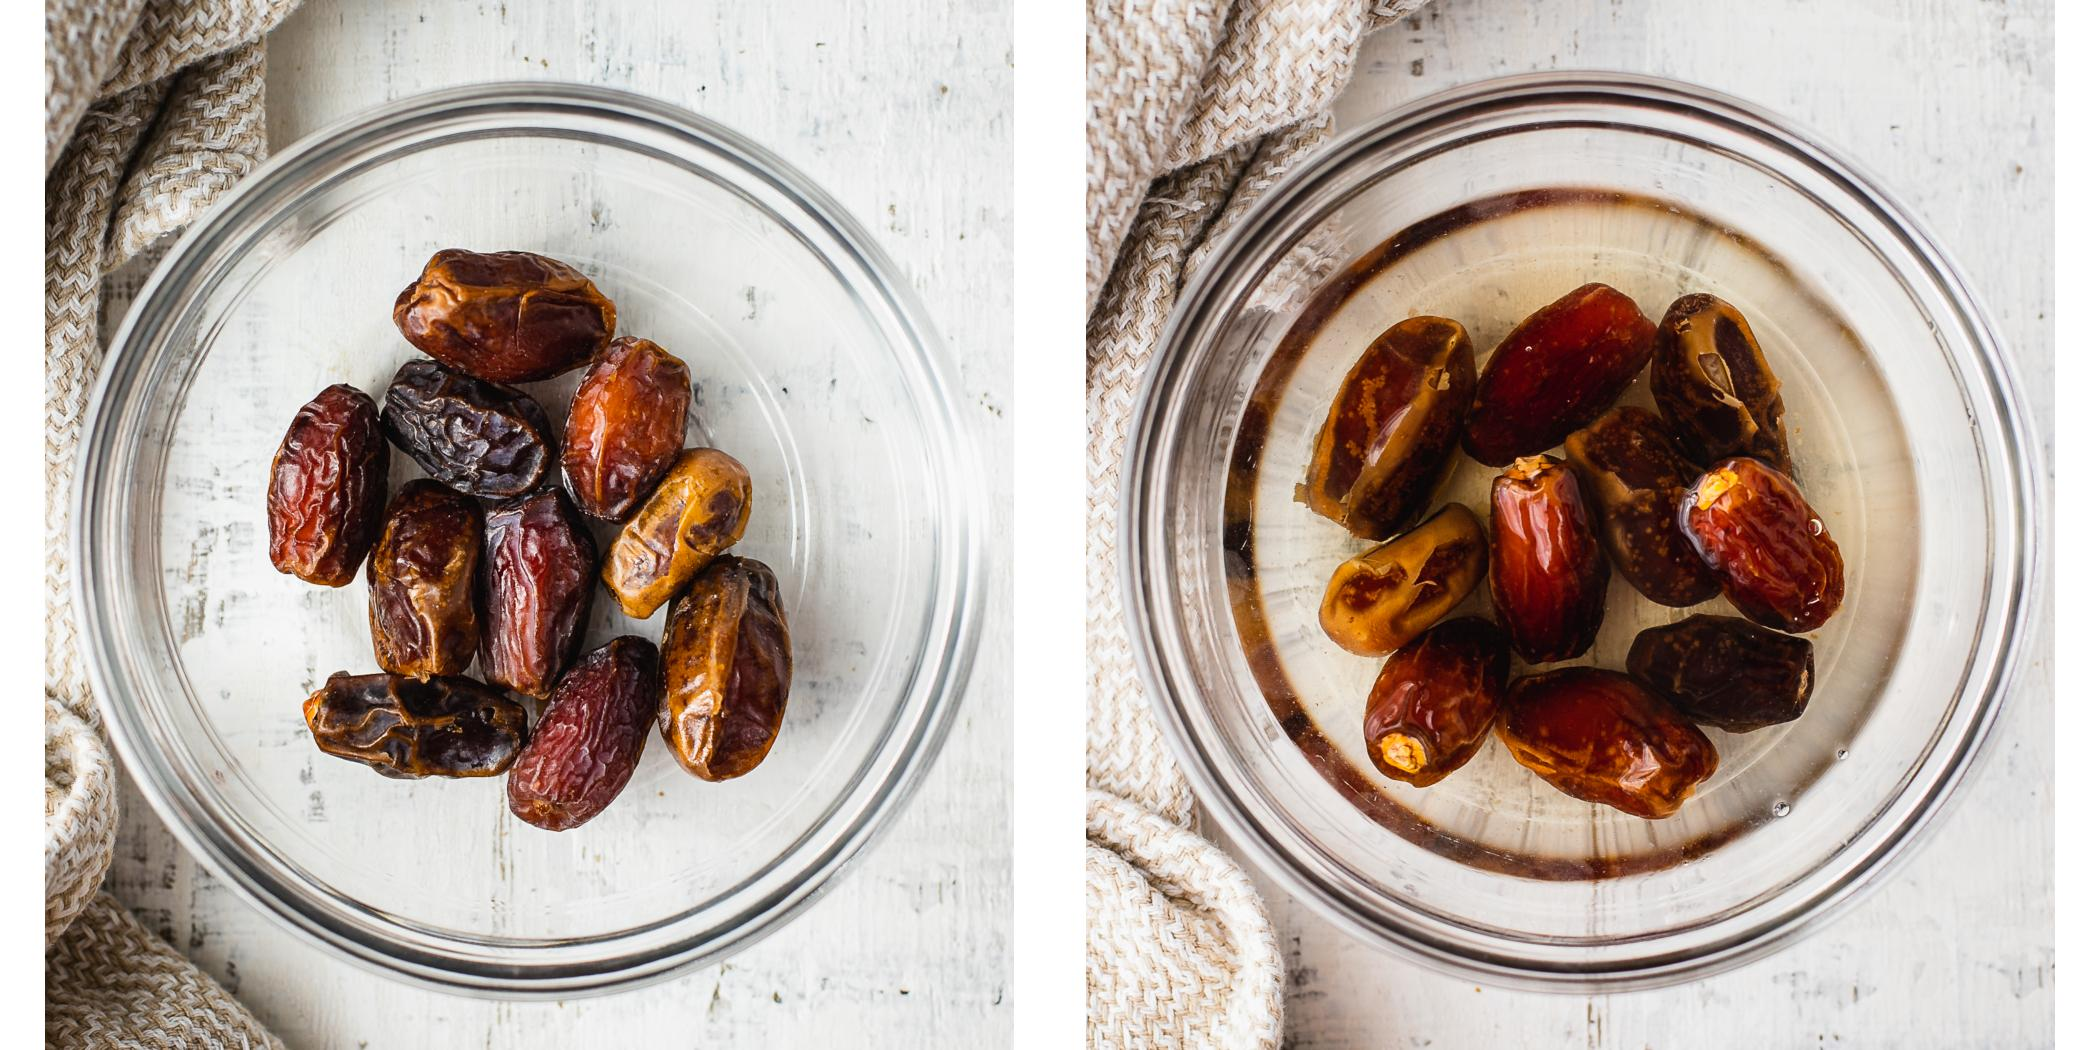 Instruction on how to make caramel pecan pie with medjool dates.